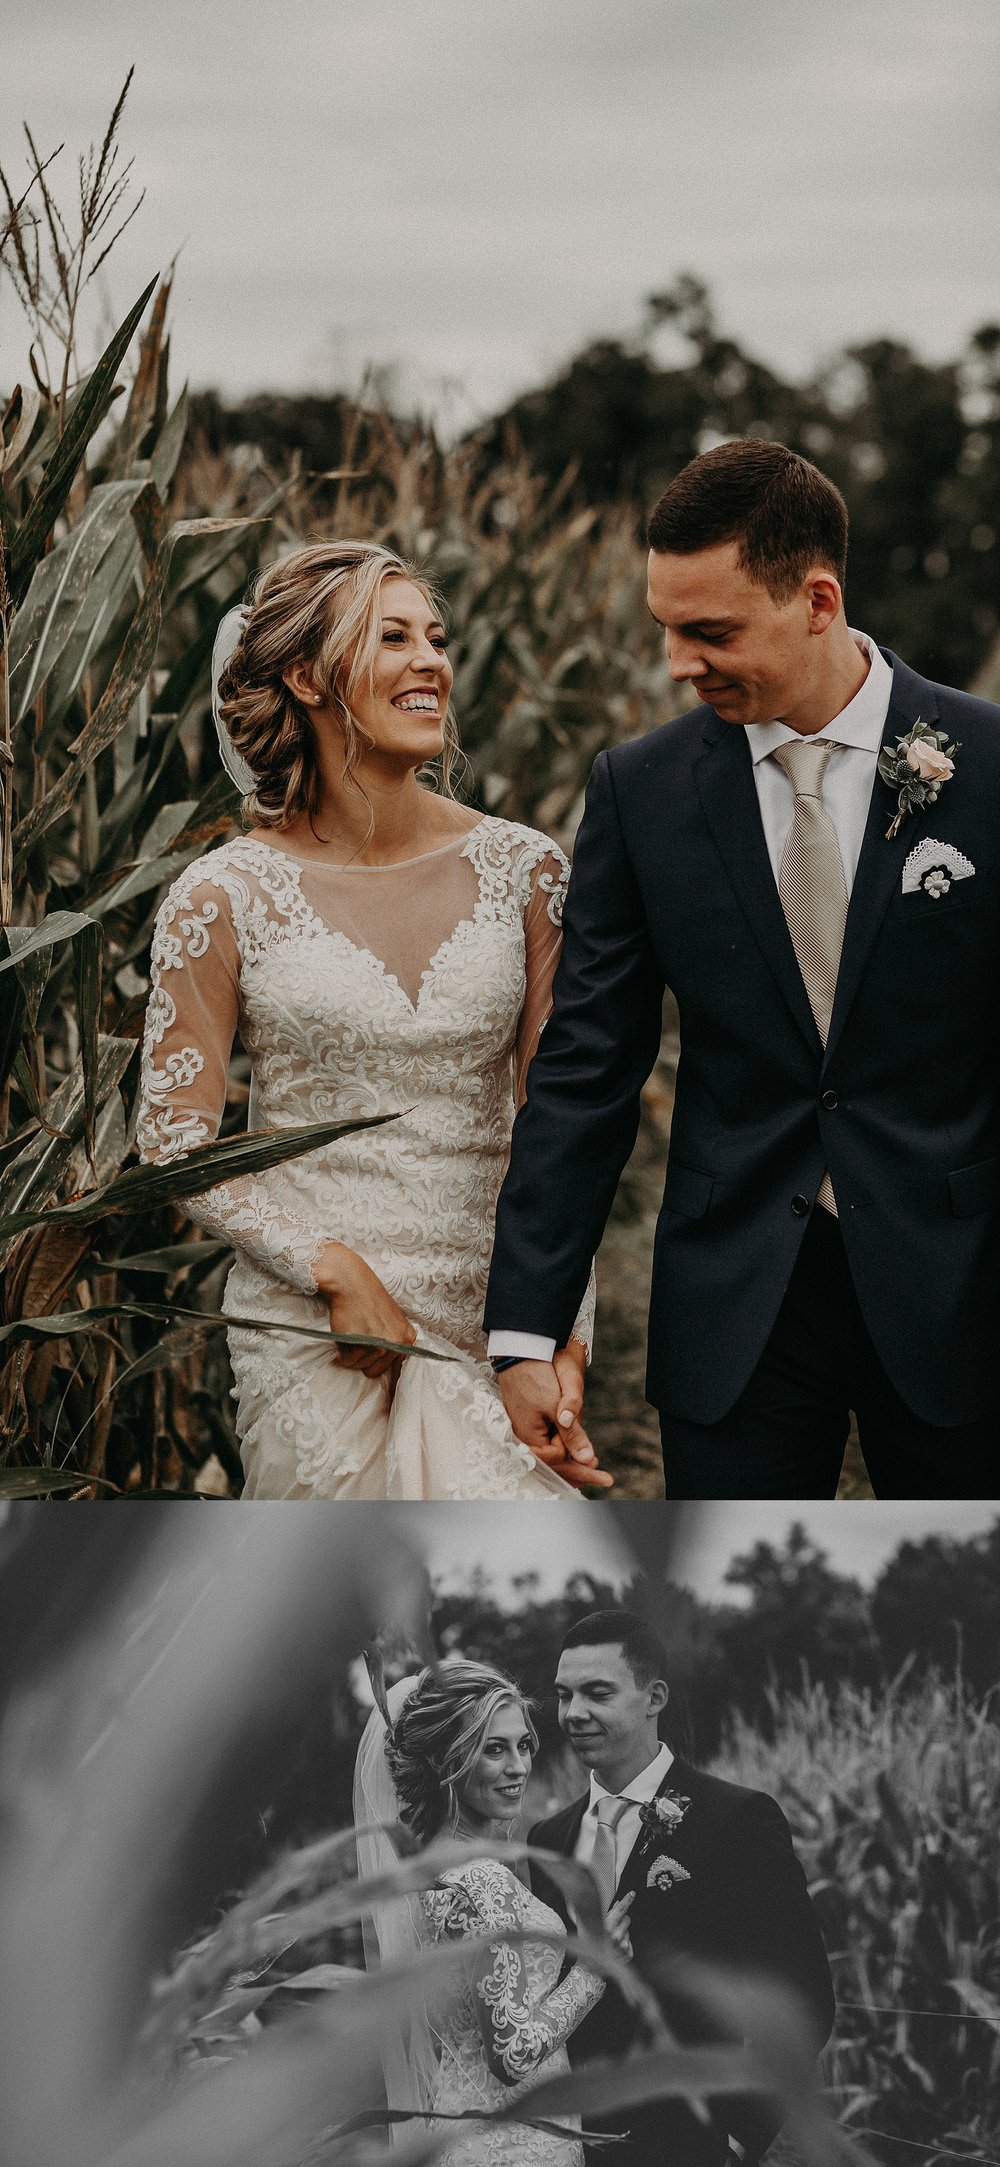 Bride and Groom laughing and walking through corn field on wedding day in Lancaster, PA